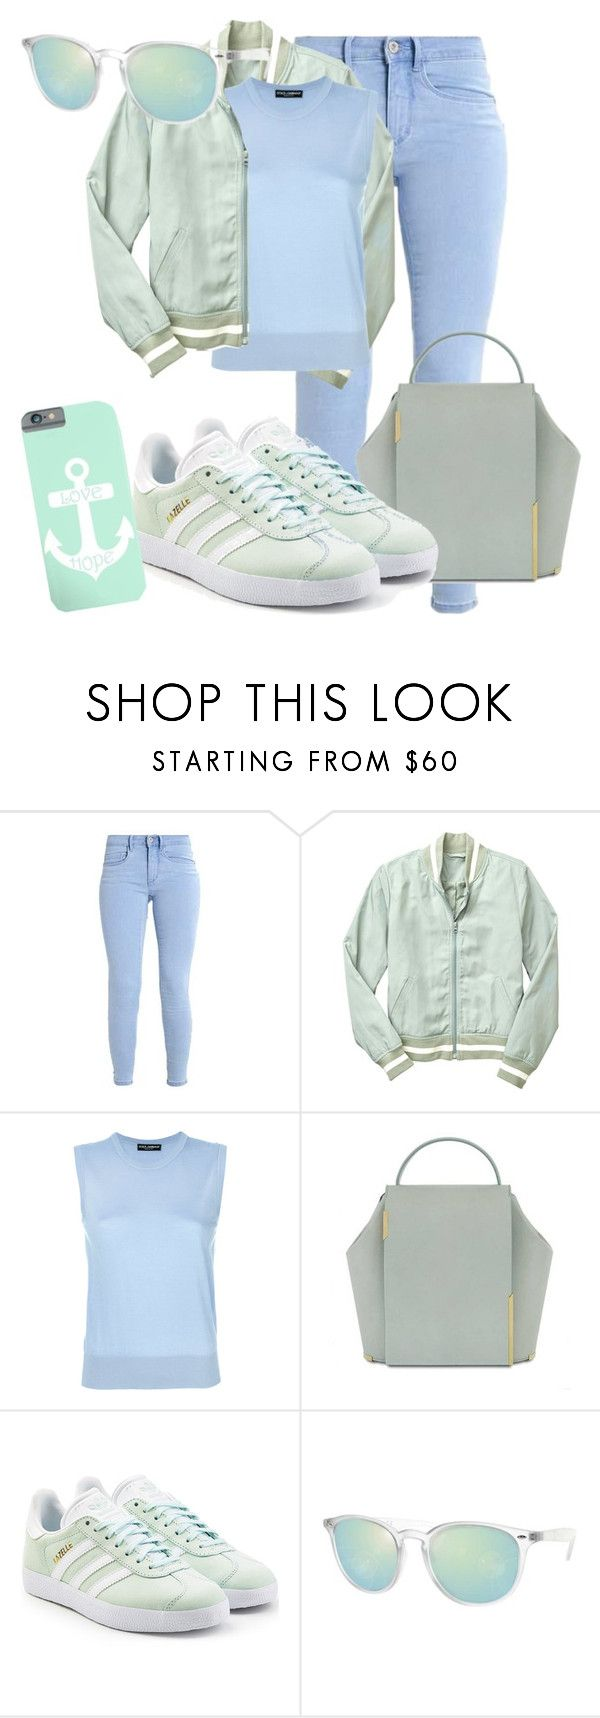 """Jubilee"" by xokissxs ❤ liked on Polyvore featuring Gap, Dolce&Gabbana, Onesixone and adidas Originals"